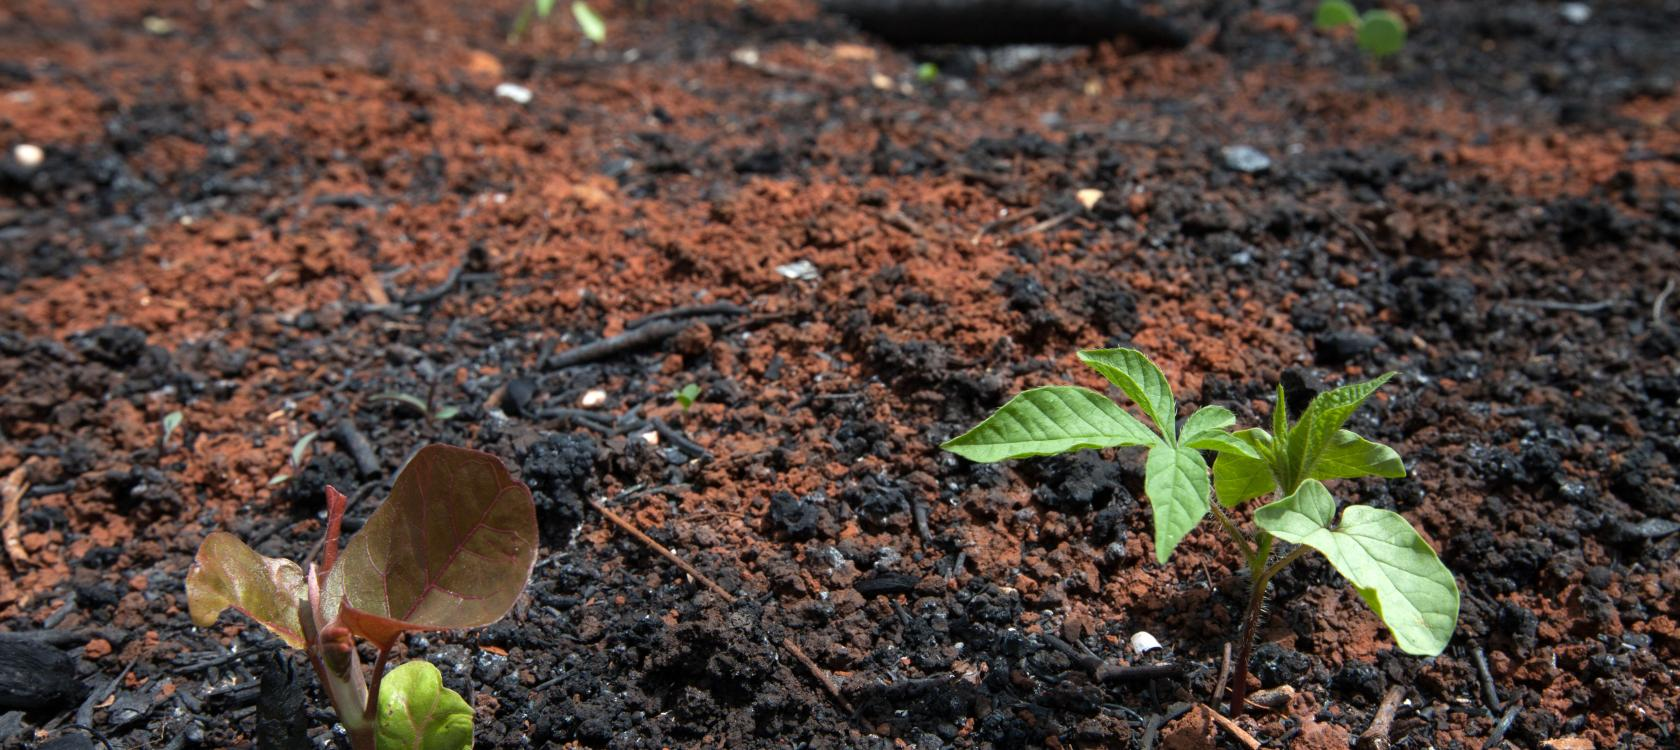 In Mexico, plants grow again after deforestation